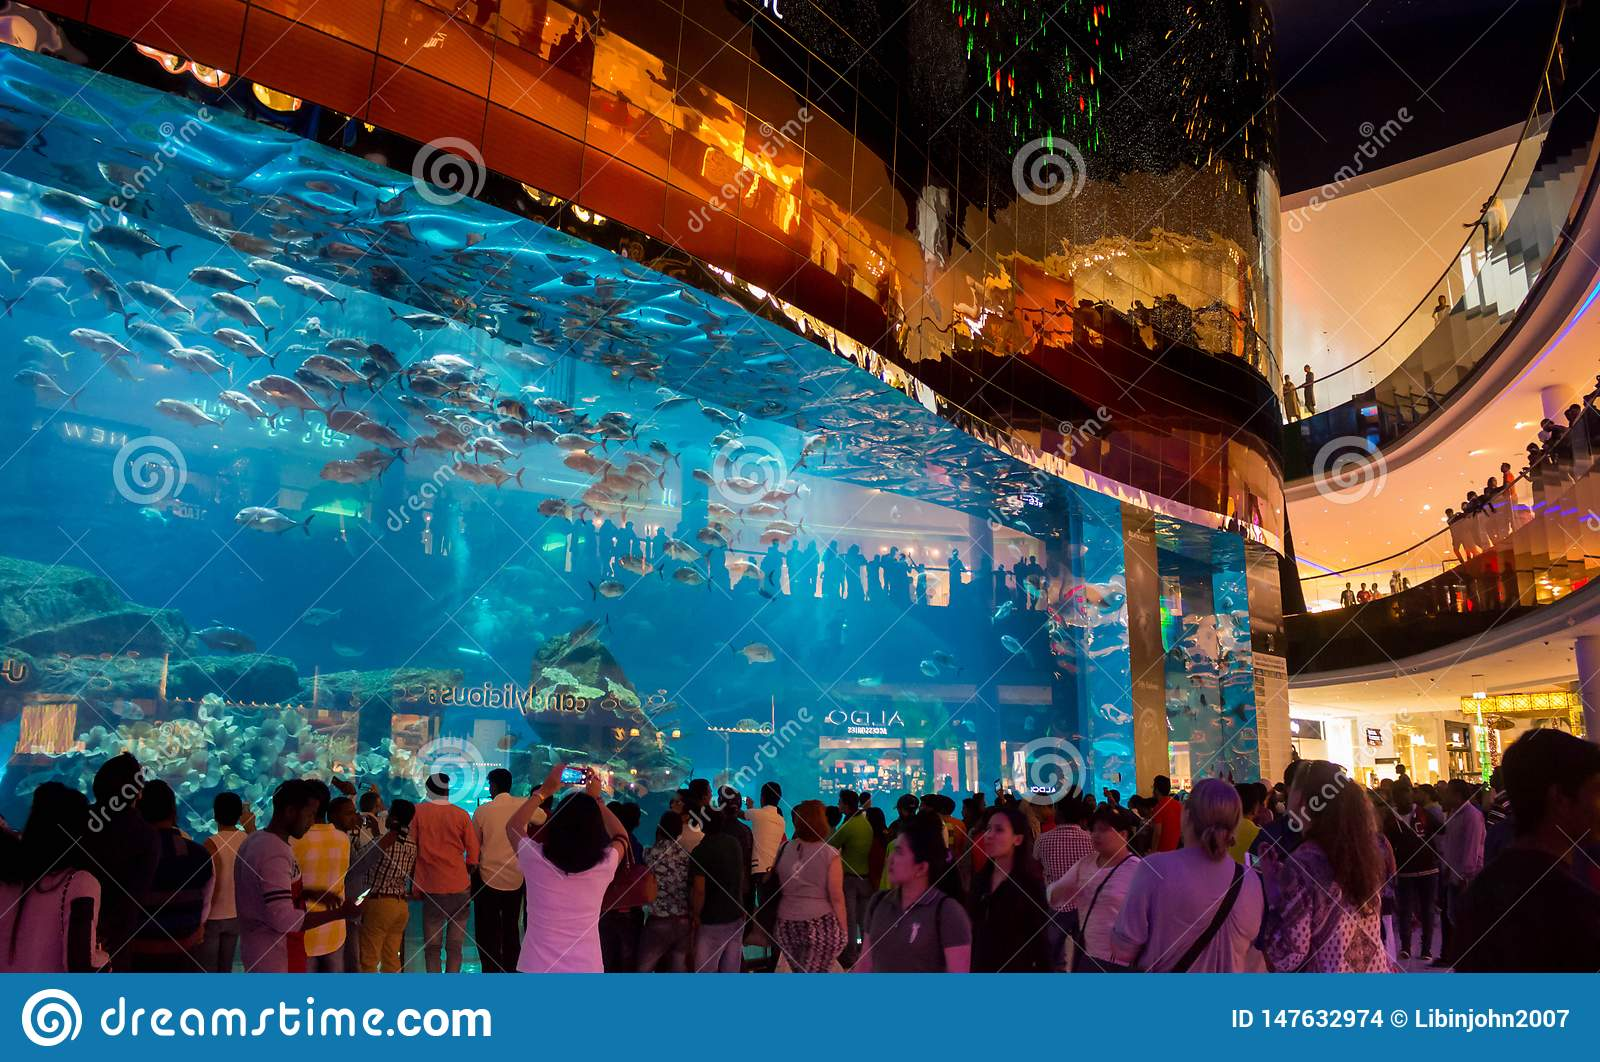 Peoples watching Largest aquarium and fishes at Dubai Mall